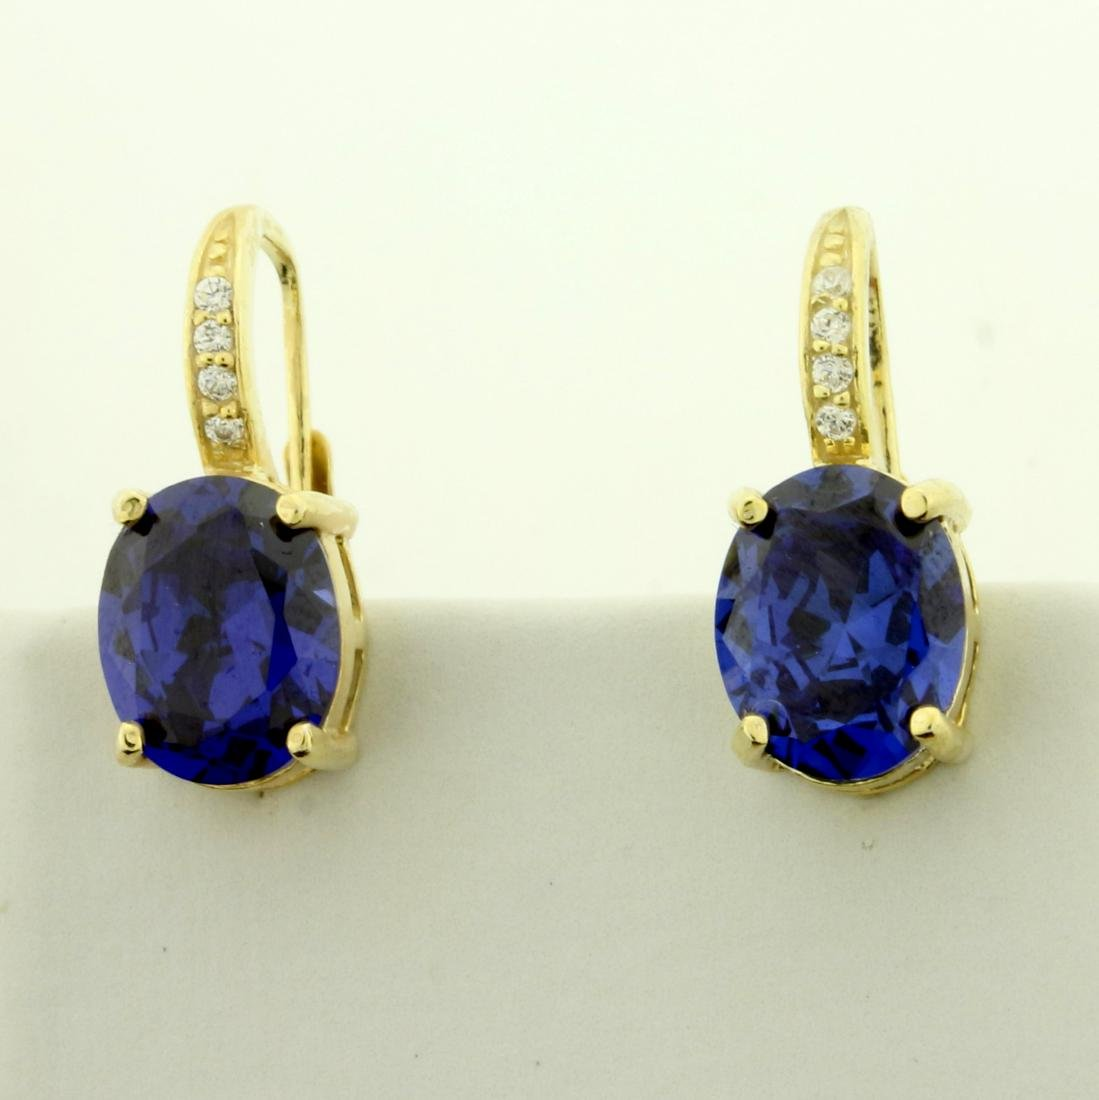 6ct TW Lab Tanzanite and CZ Earrings in Sterling Silver